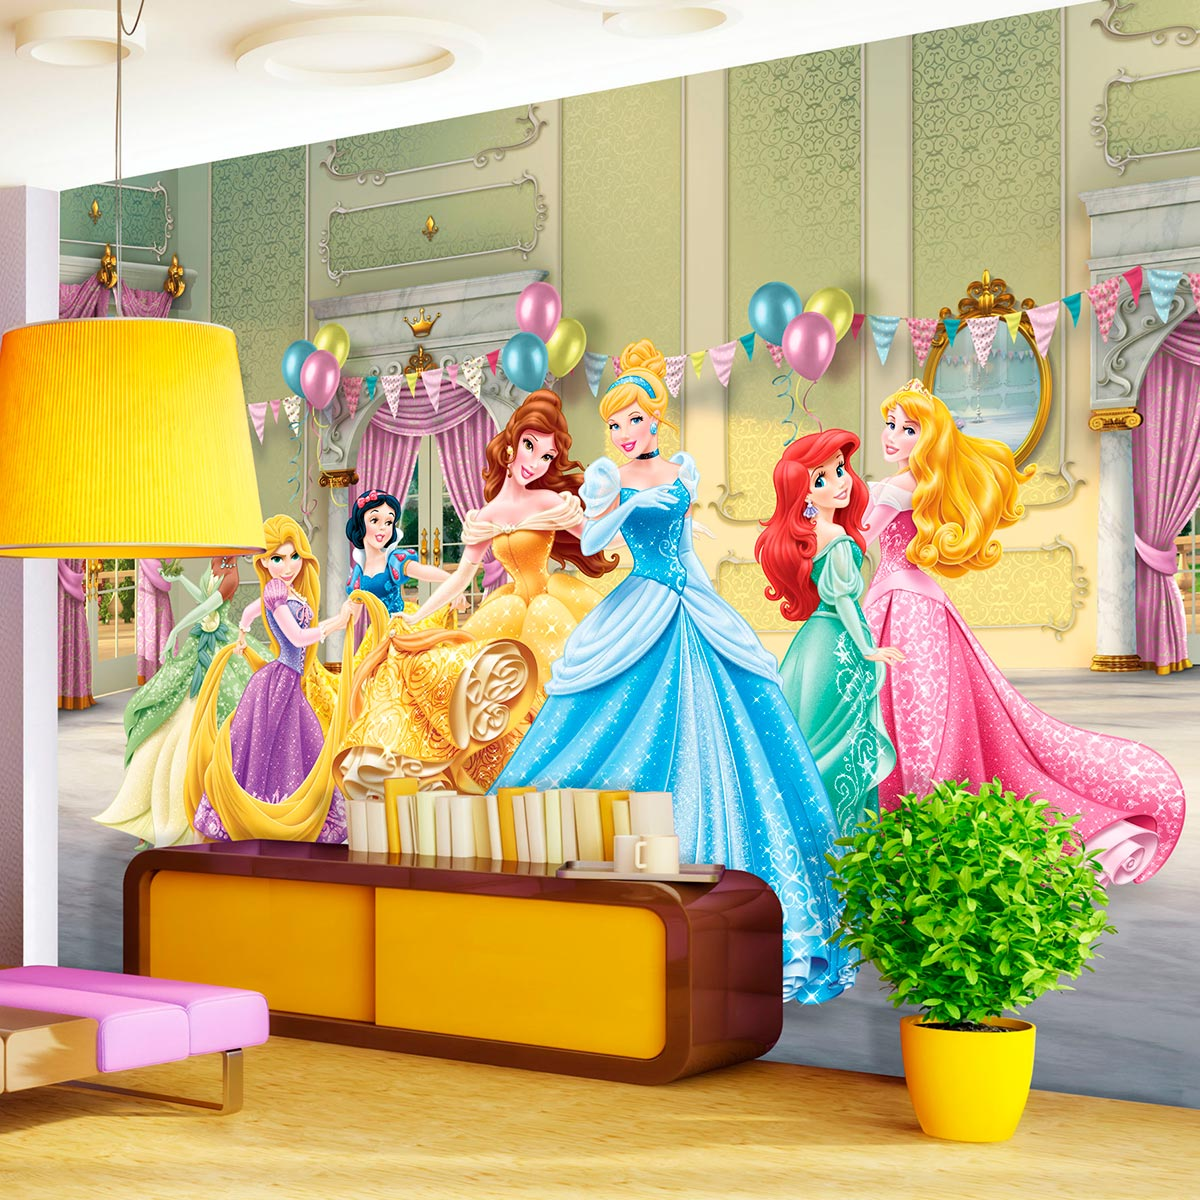 Chambre fille princesse disney top pendule horloge for Stickers geant chambre fille